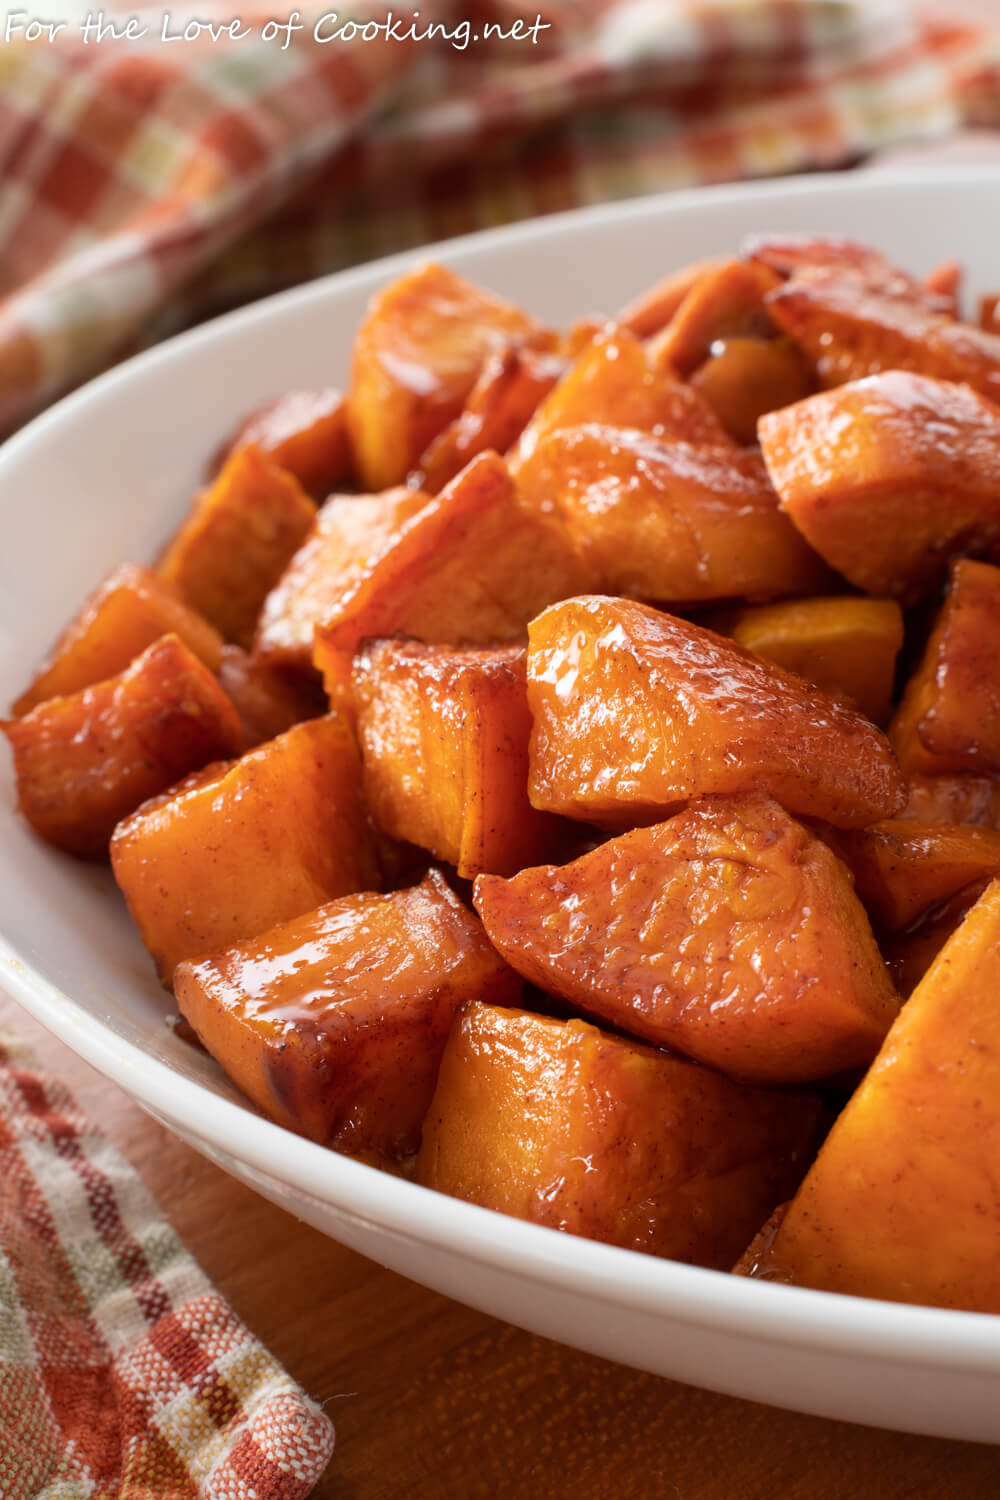 Honey Butter Roasted Sweet Potatoes with Cinnamon